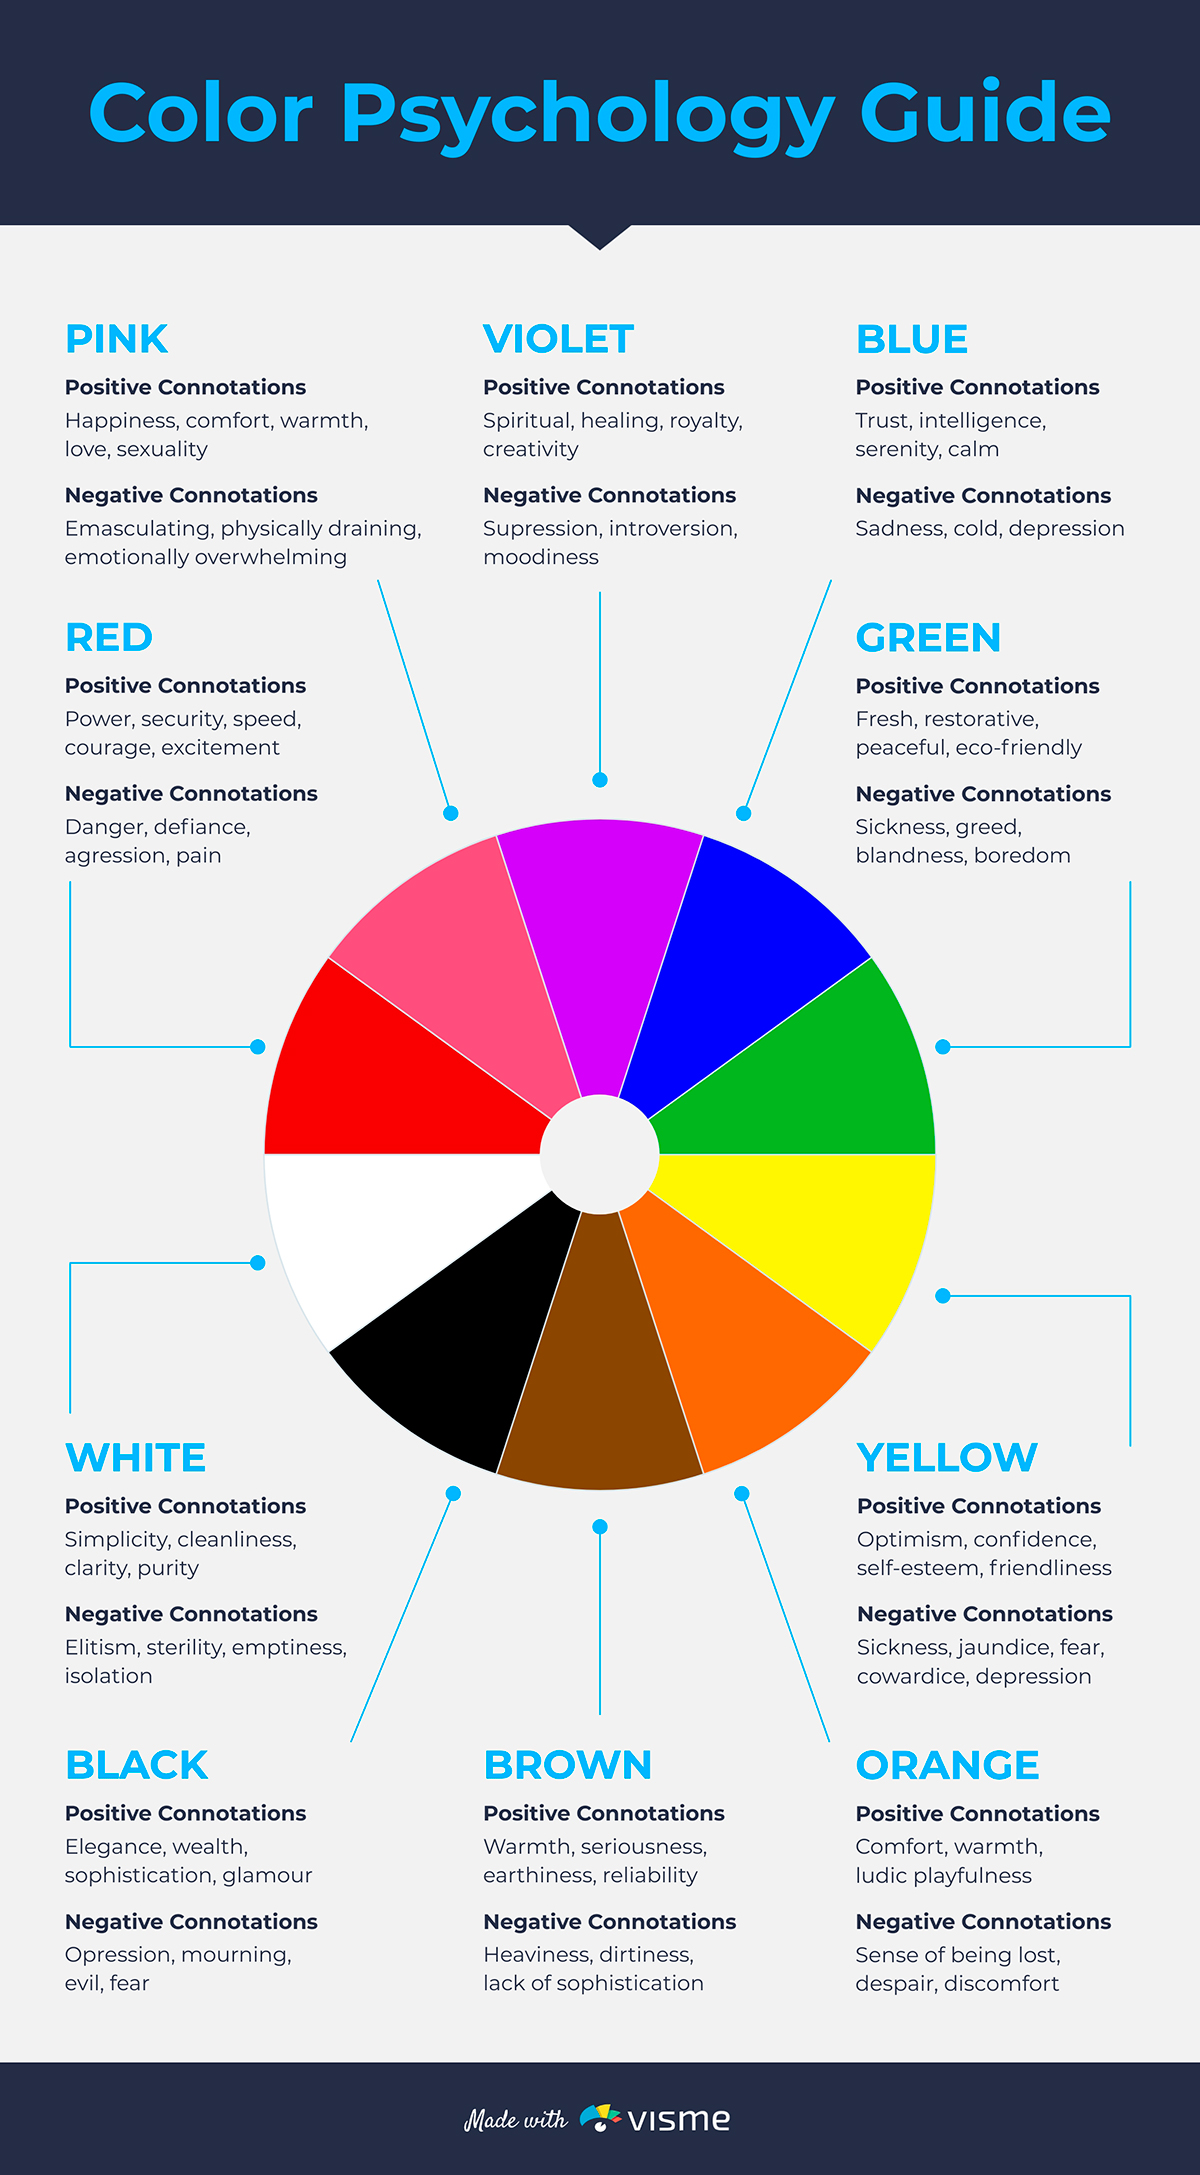 An infographic on color psychology with a circle in the middle that has ten labelled slices, one for each color, and a description of each color.